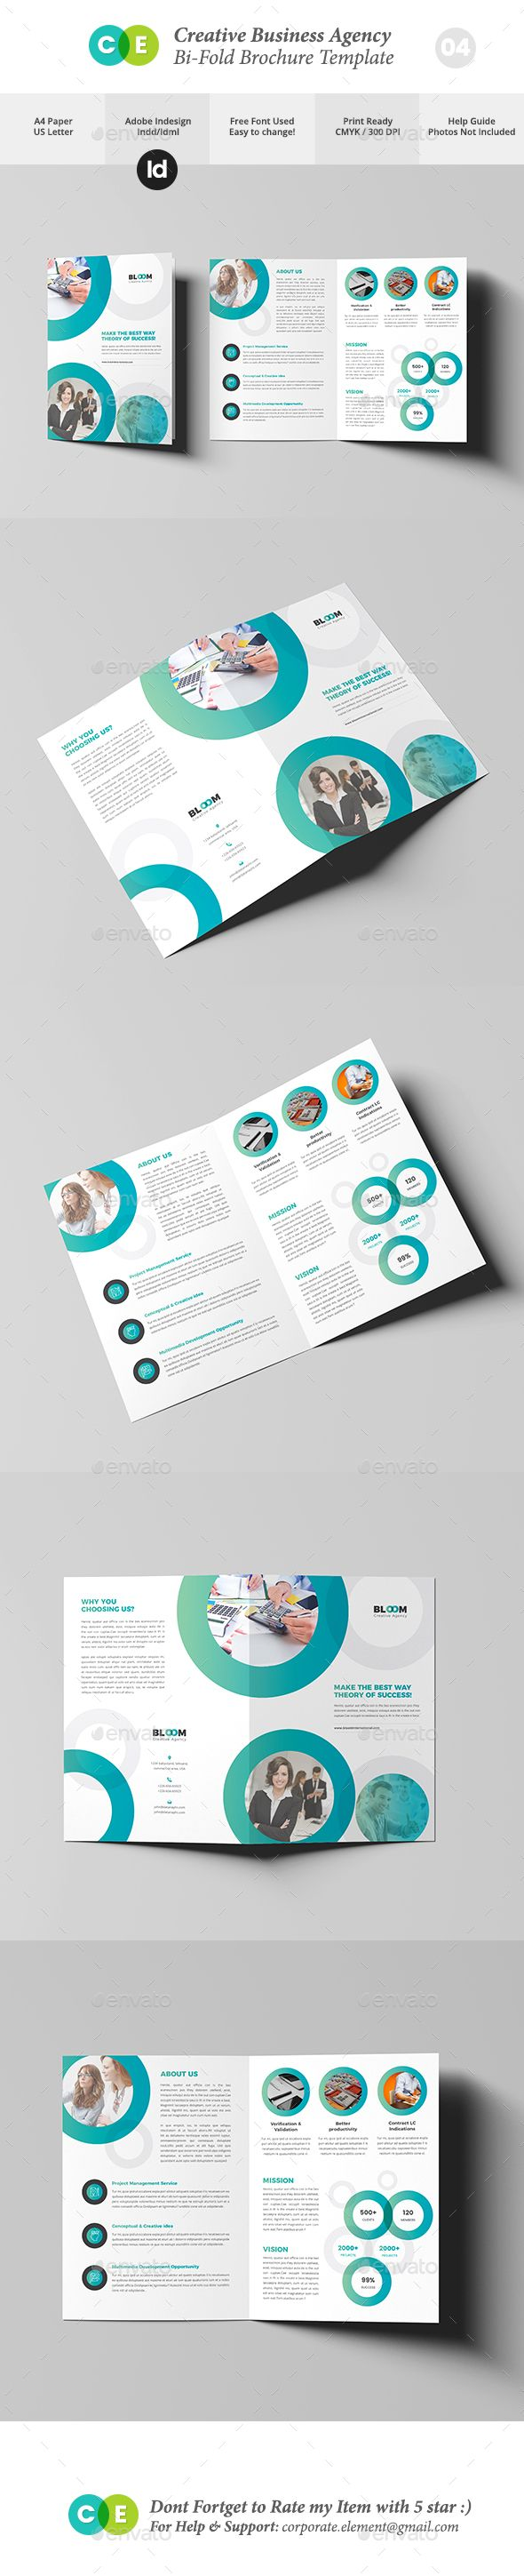 Best BiFold Brochure Designs Images On   Brochures